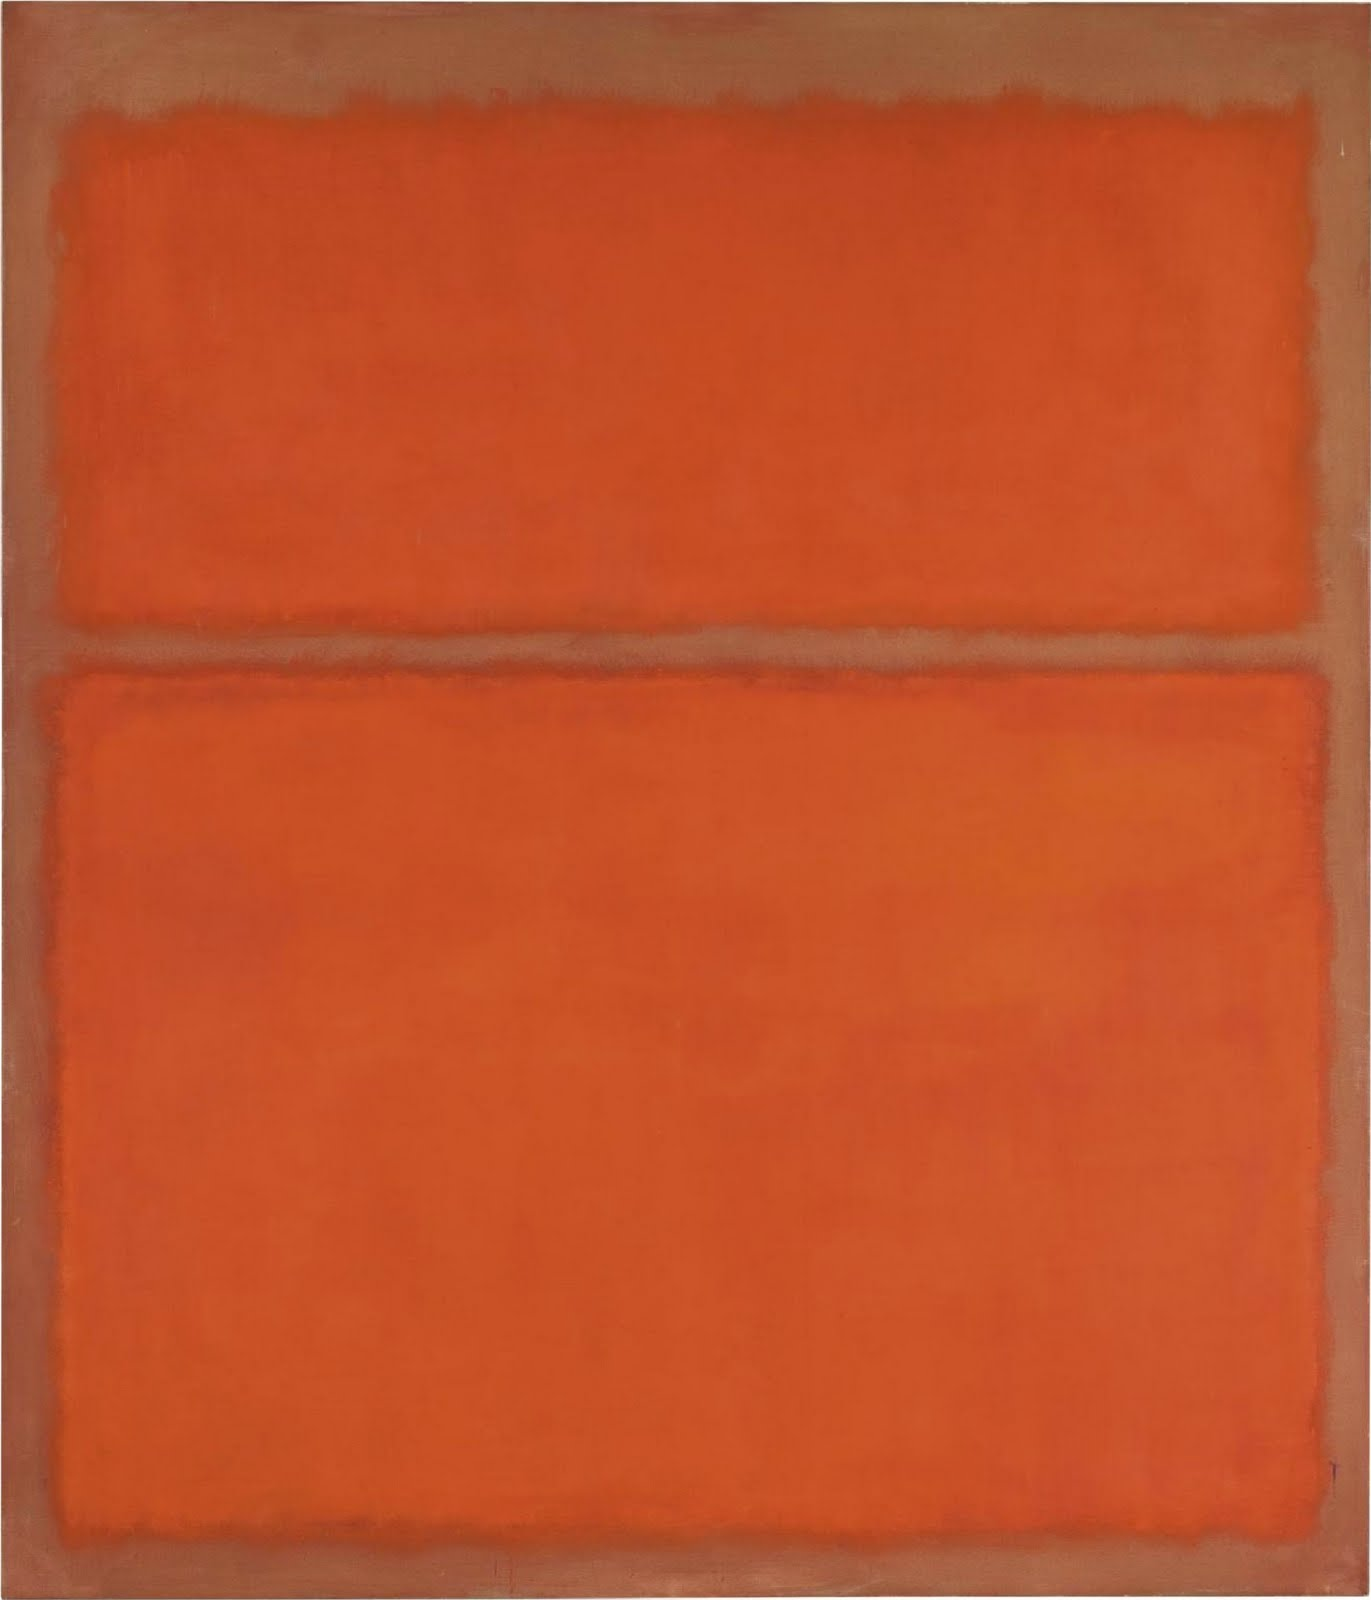 MARK-ROTHKO-MARCUS-ROTHKOWITZ-UNTITLED-162